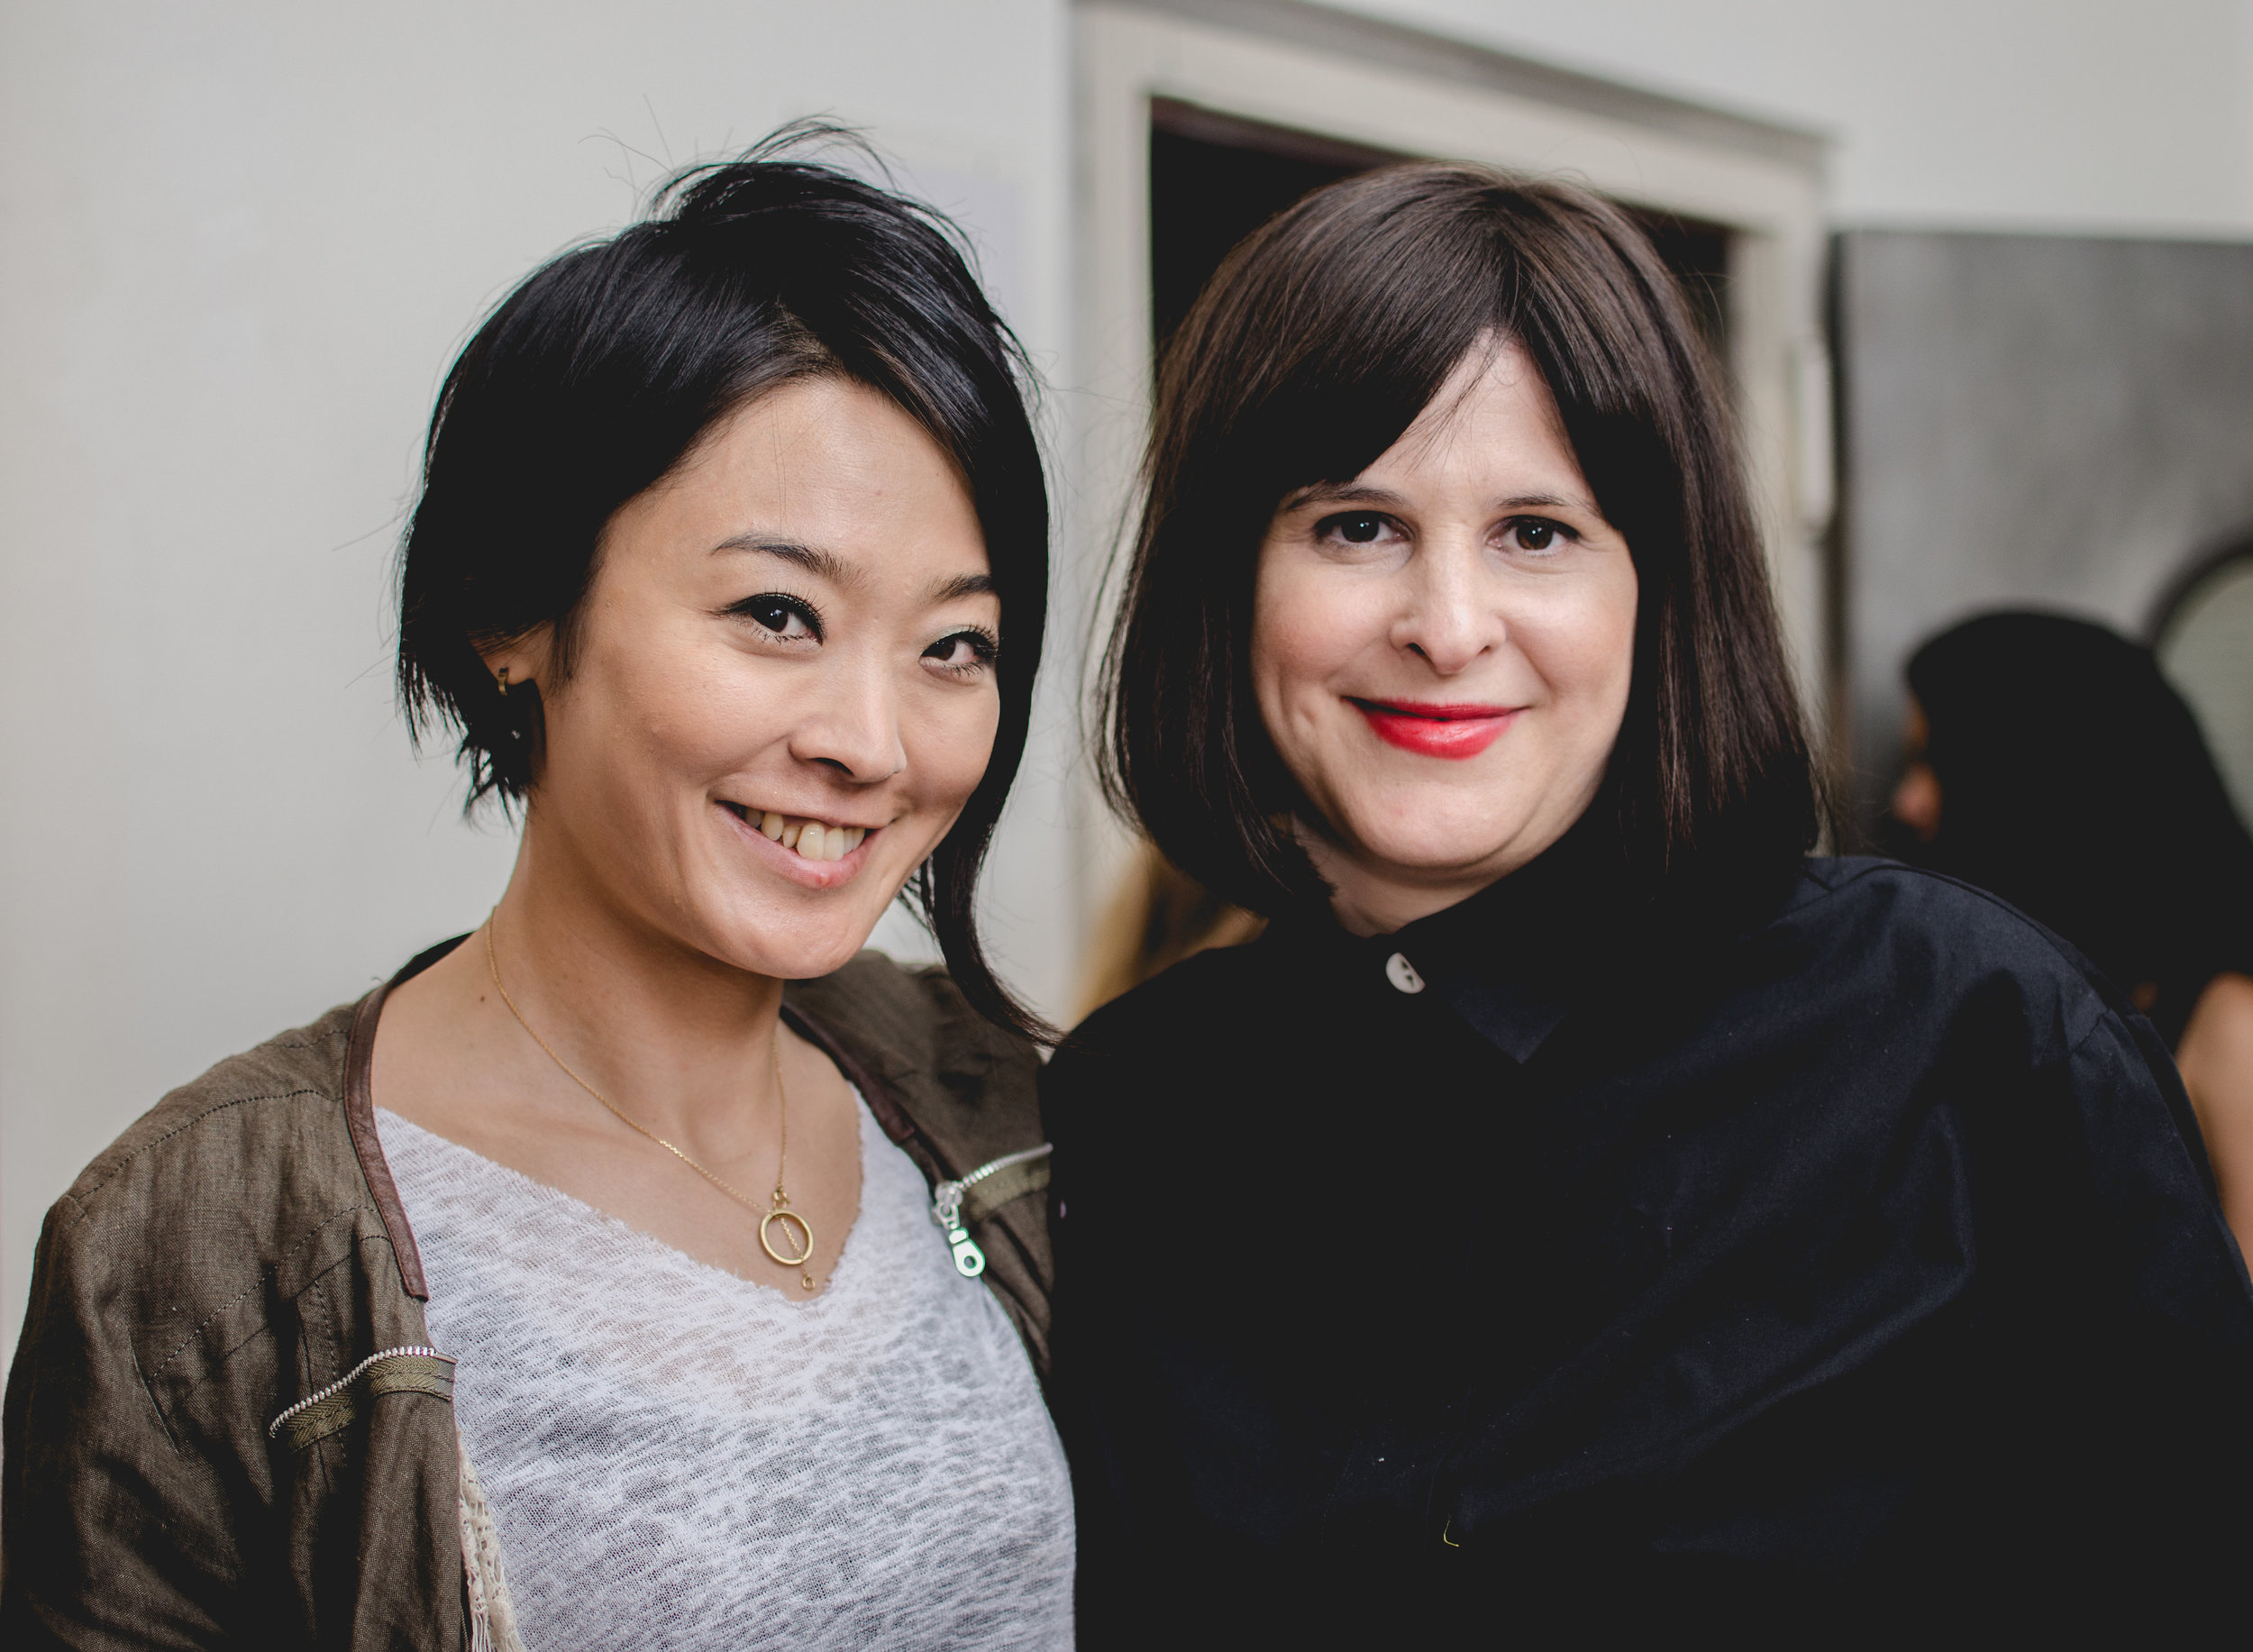 Our talented makeup artist Akiyo Koyama; who made our models look amazing, poses with MTJF designer Eve.